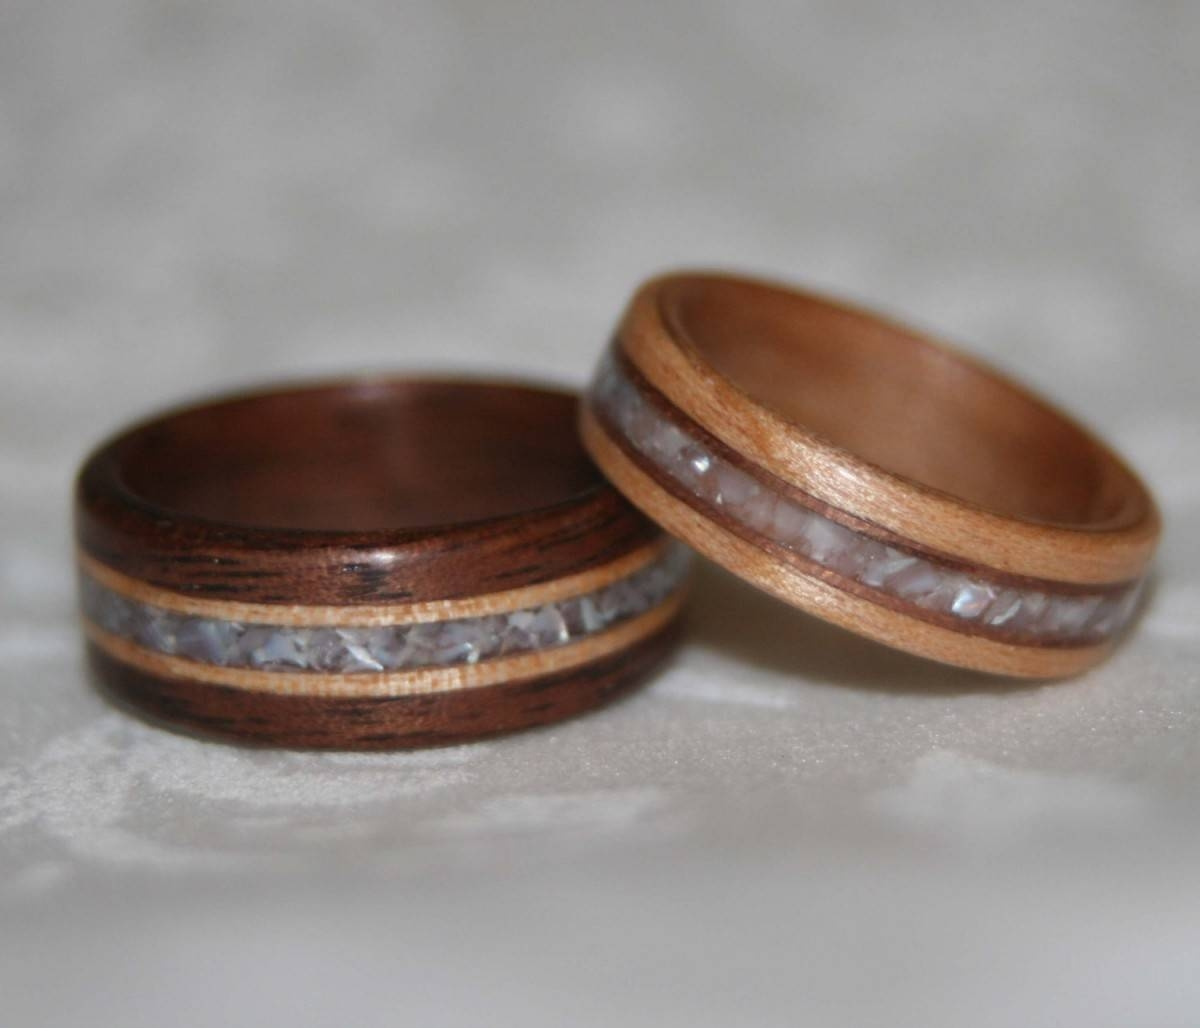 Wedding Rings : Homemade Wedding Bands Make Your Own Wedding Ring Throughout Massachusetts Wedding Bands (View 9 of 15)